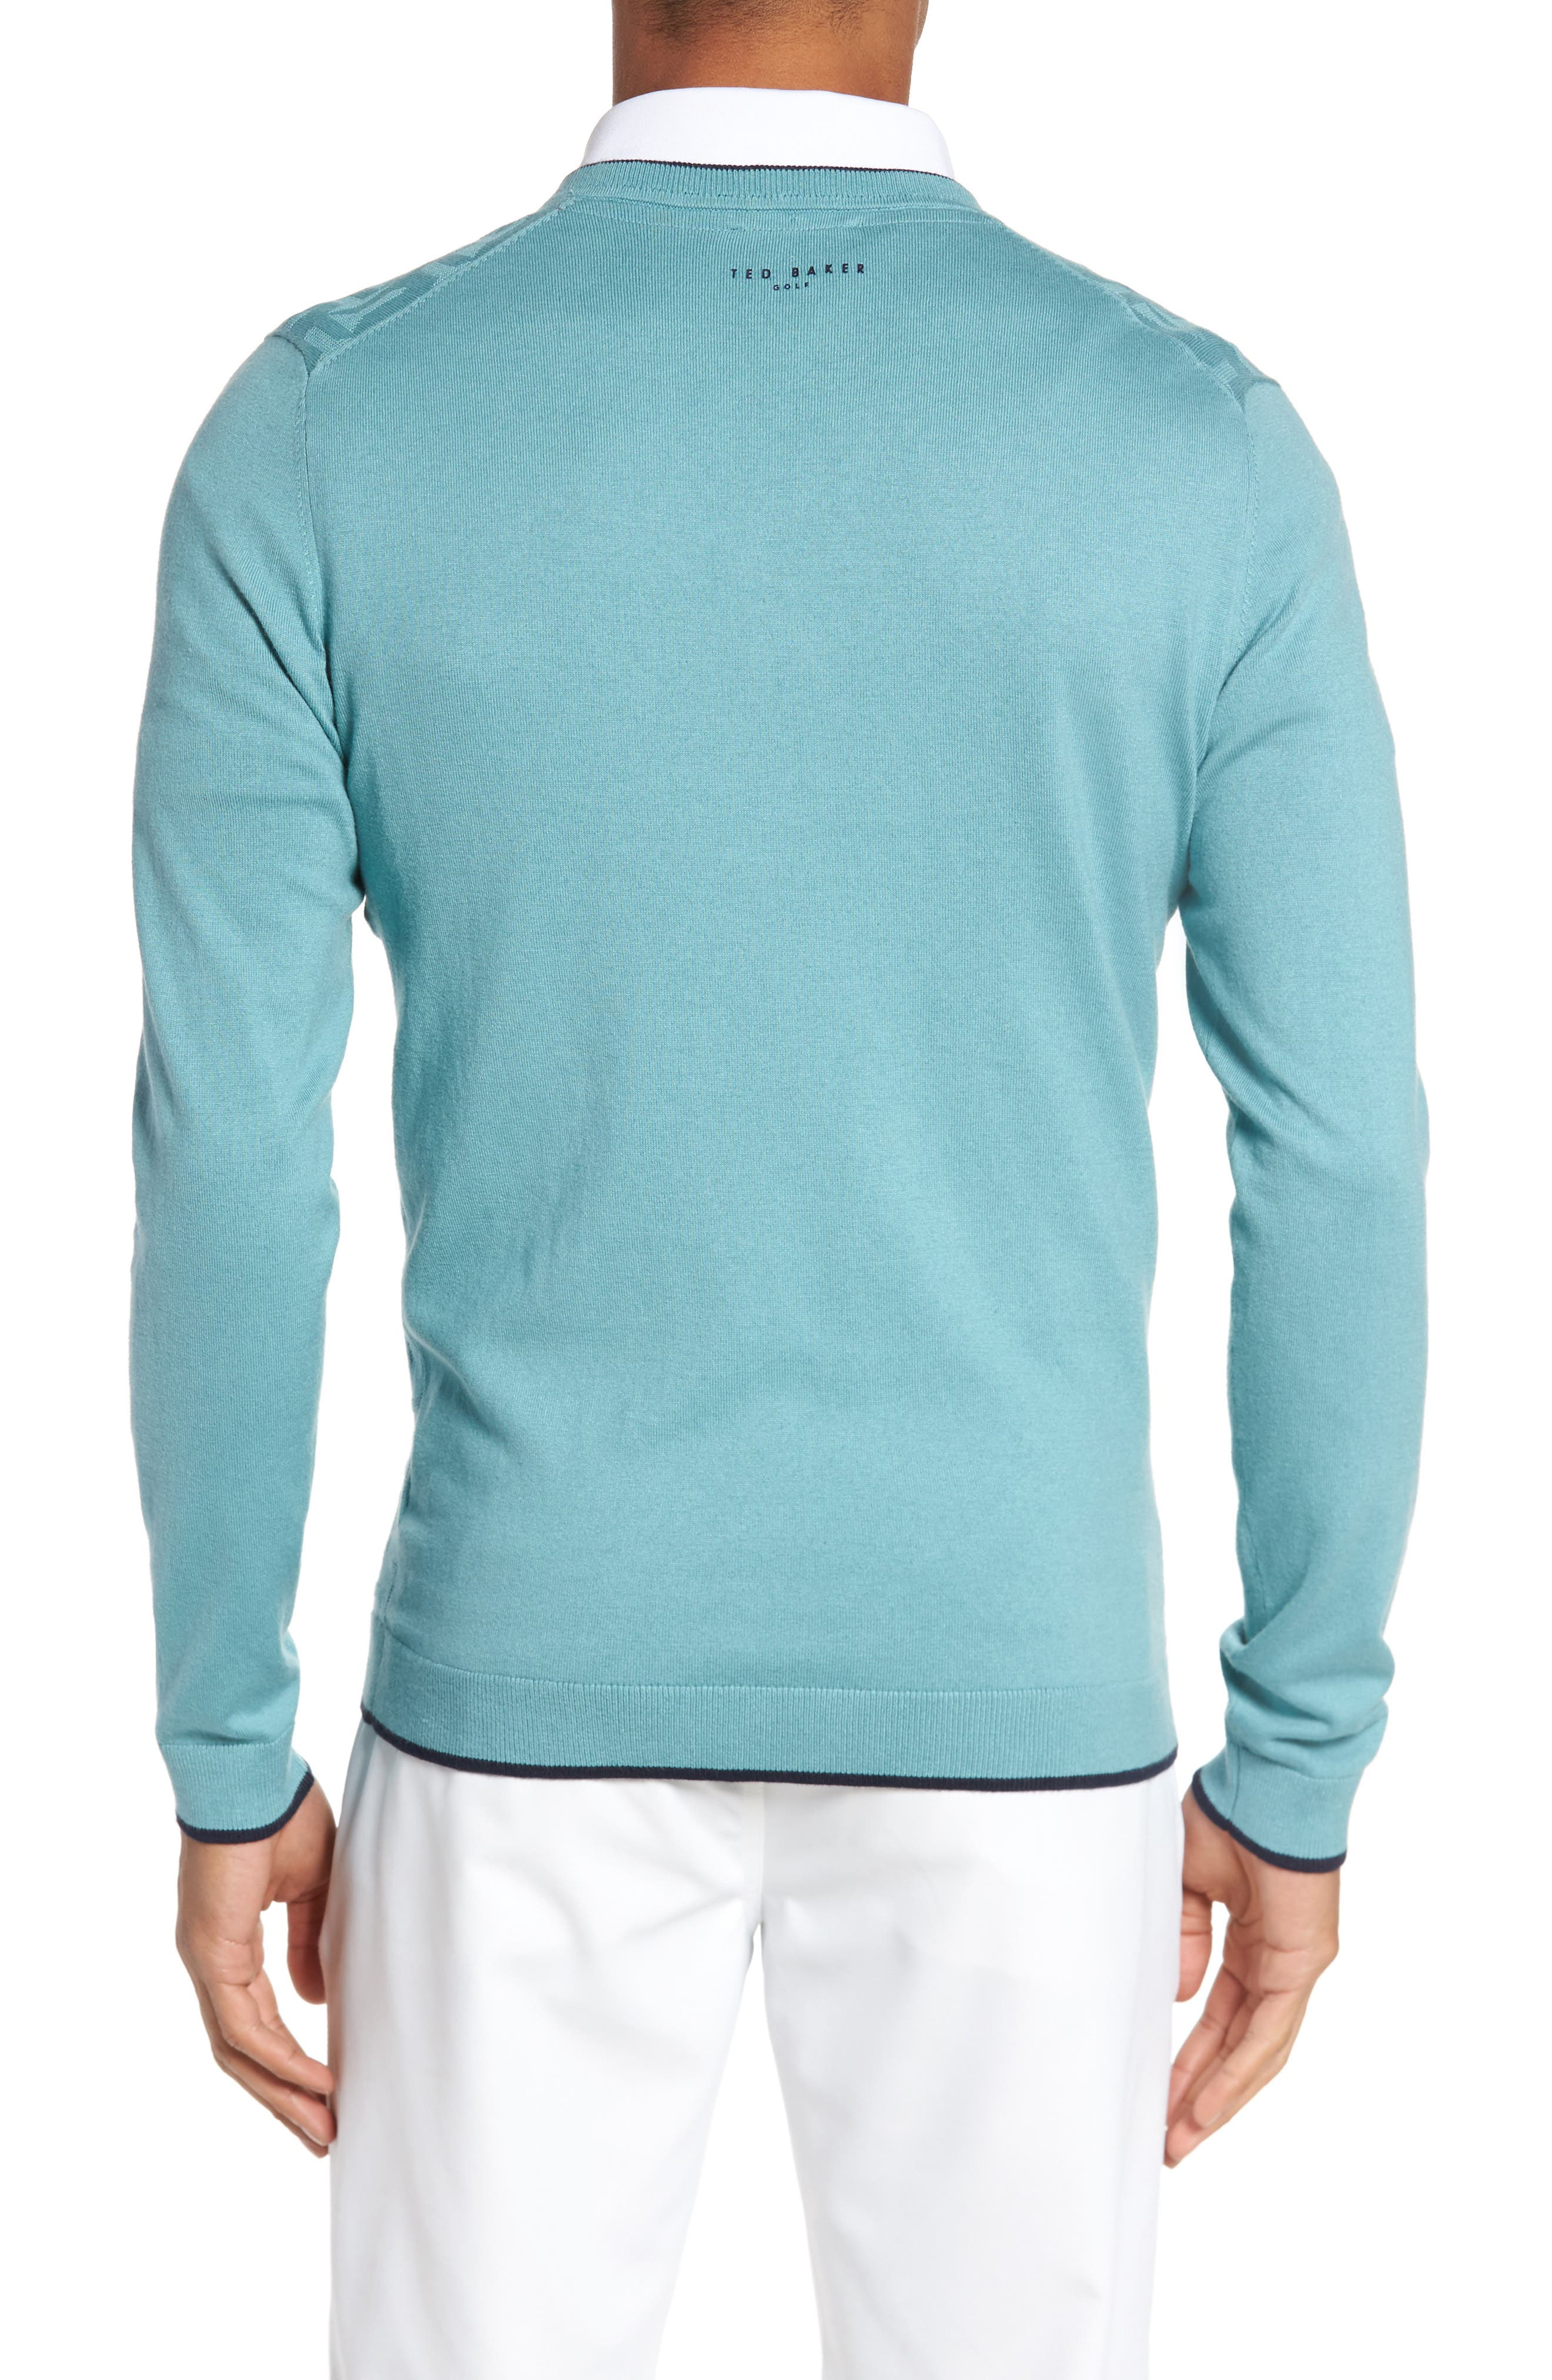 Armstro Tipped Golf Tee Sweater,                             Alternate thumbnail 7, color,